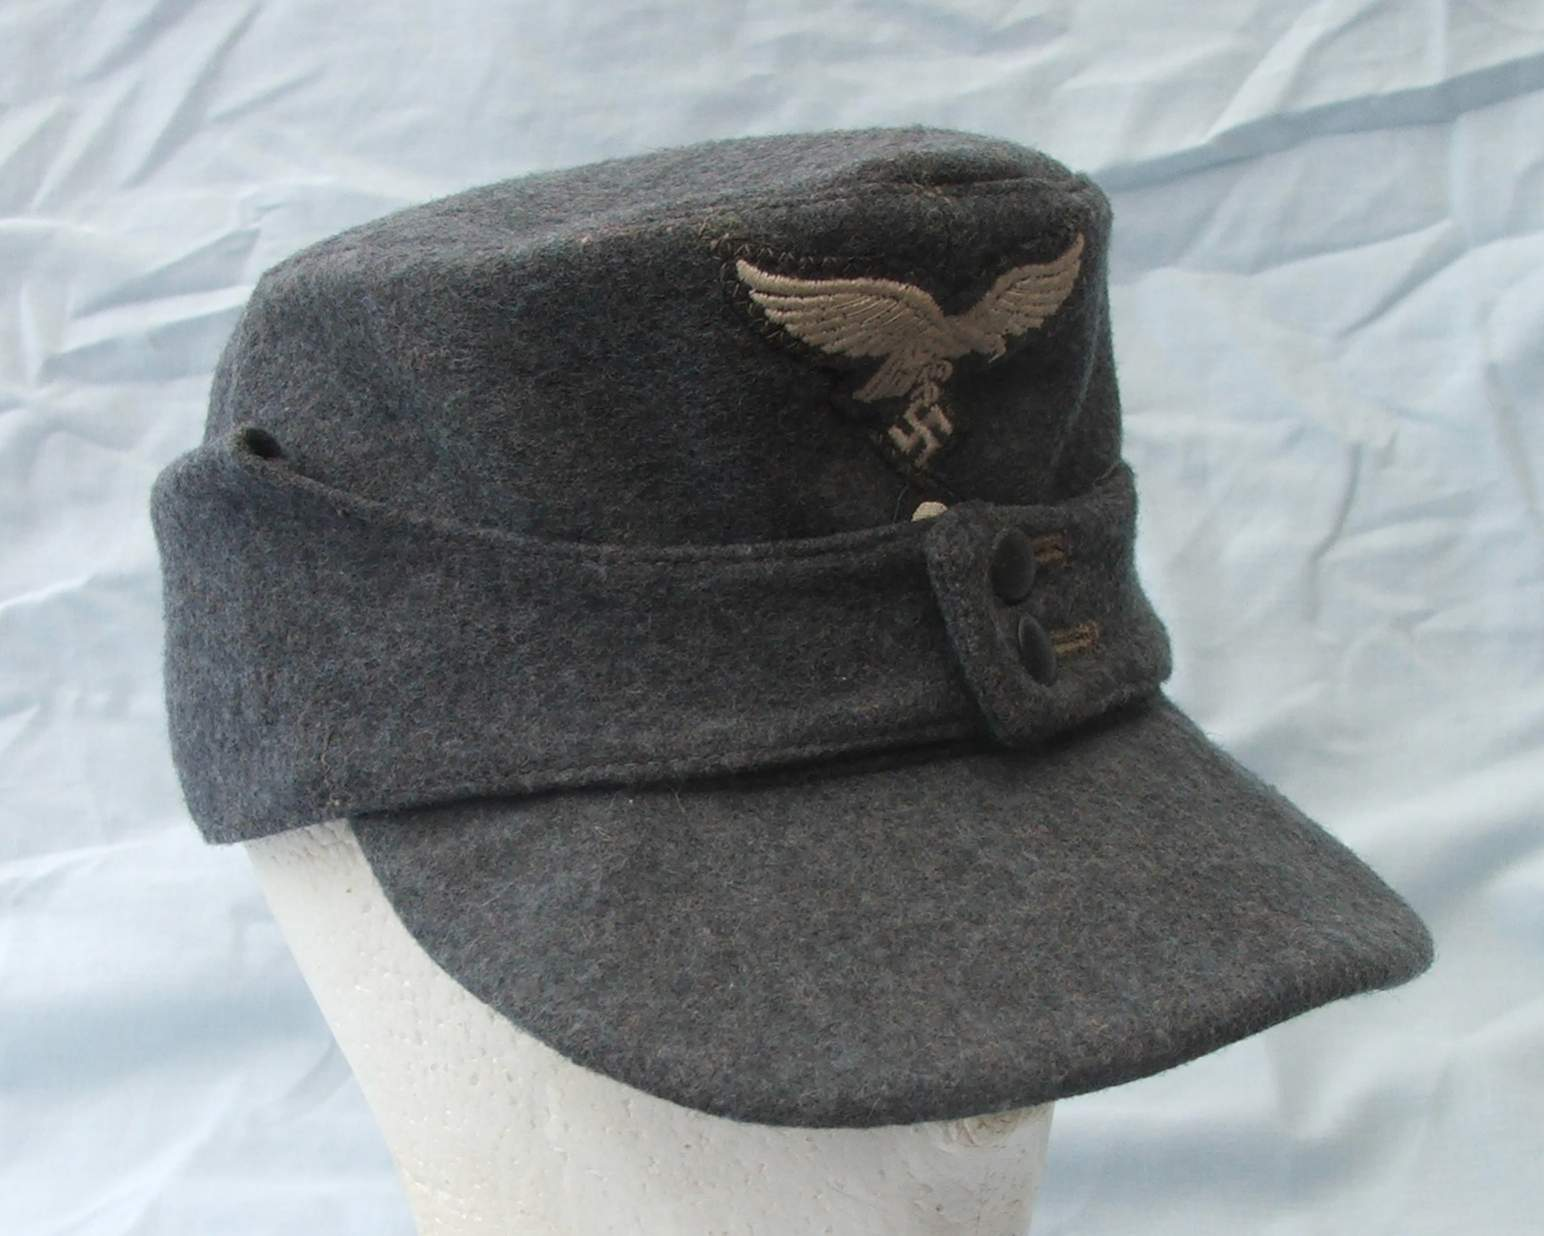 Luftwaffe 1944 Dated Two Piece Insignia Other Ranks M43 Name Acjpgviews 7775size 418 Kb Luft 43 Cap 002 Views